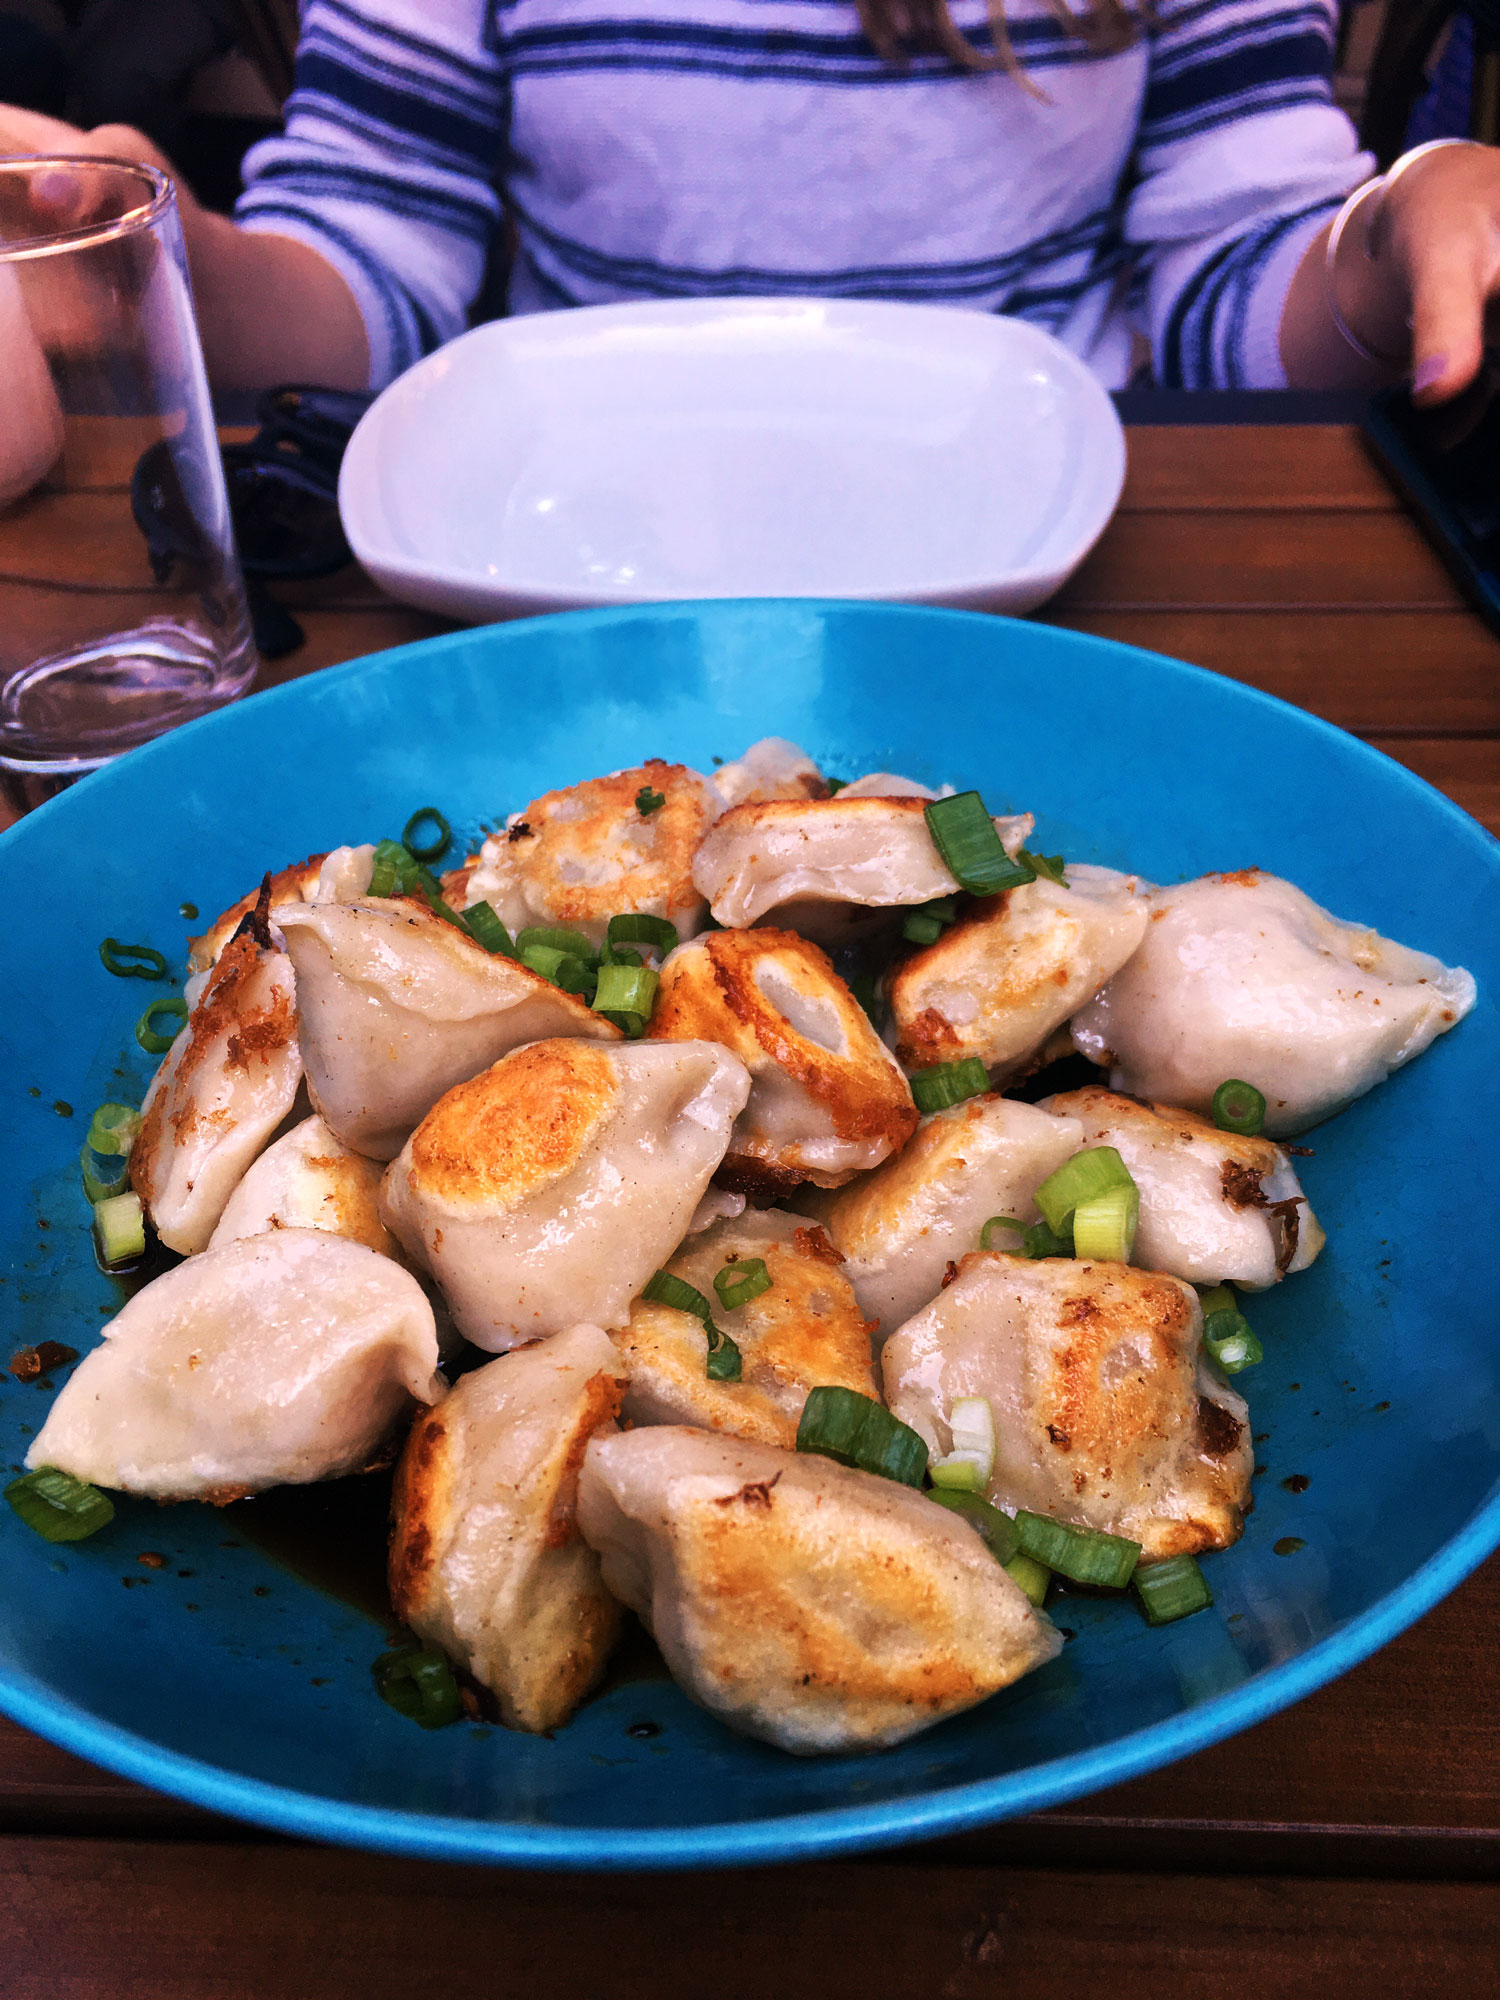 I caught up with friends over 48 dumplings at  Banyan Bar + Refuge  in the South End in Boston. From 4-6pm, dumpling orders are $1...for 2 dumplings! We couldn't stop. They're delicious.